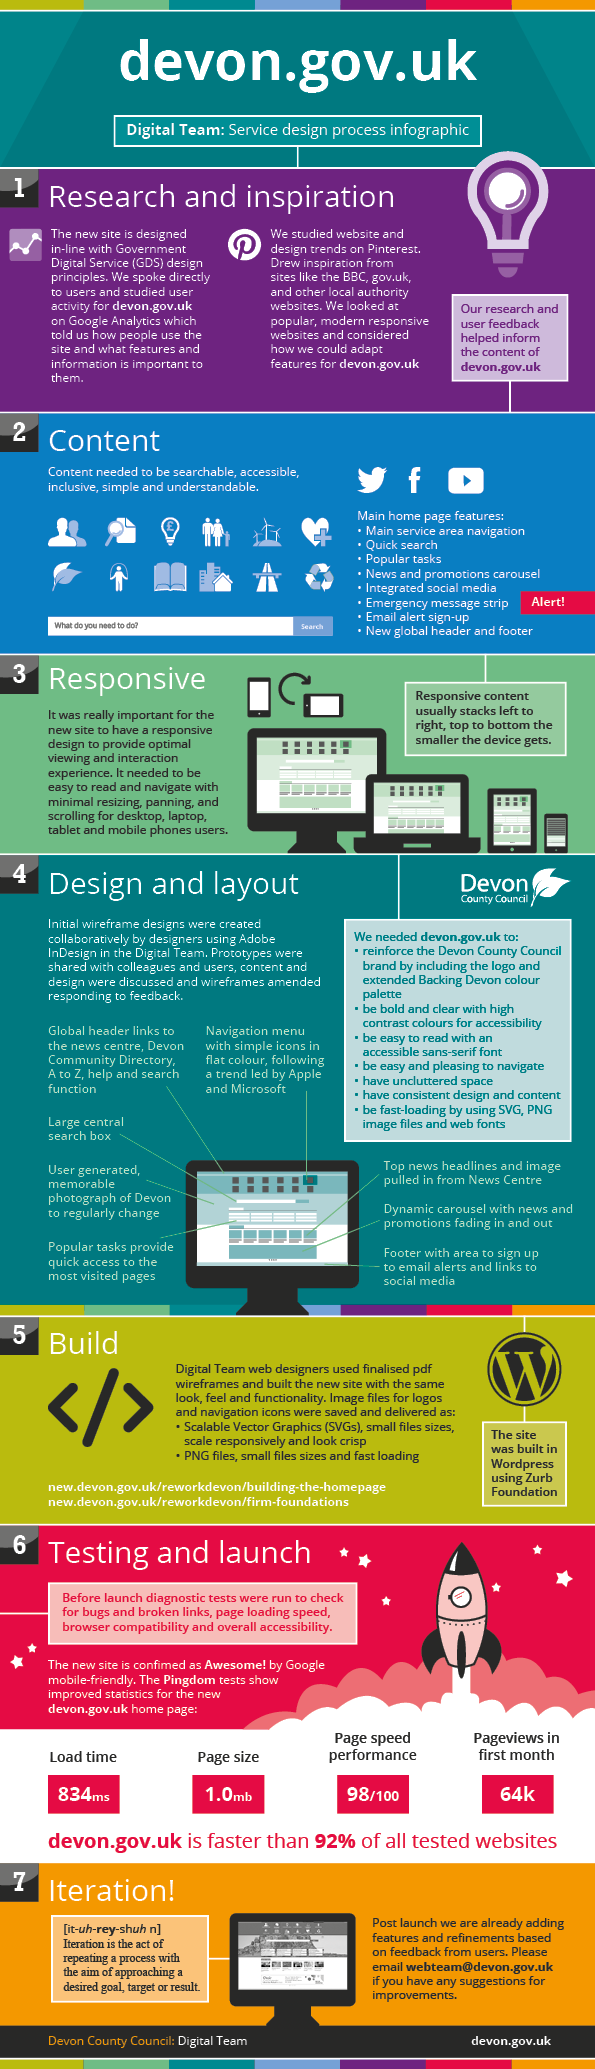 Service design process infographic